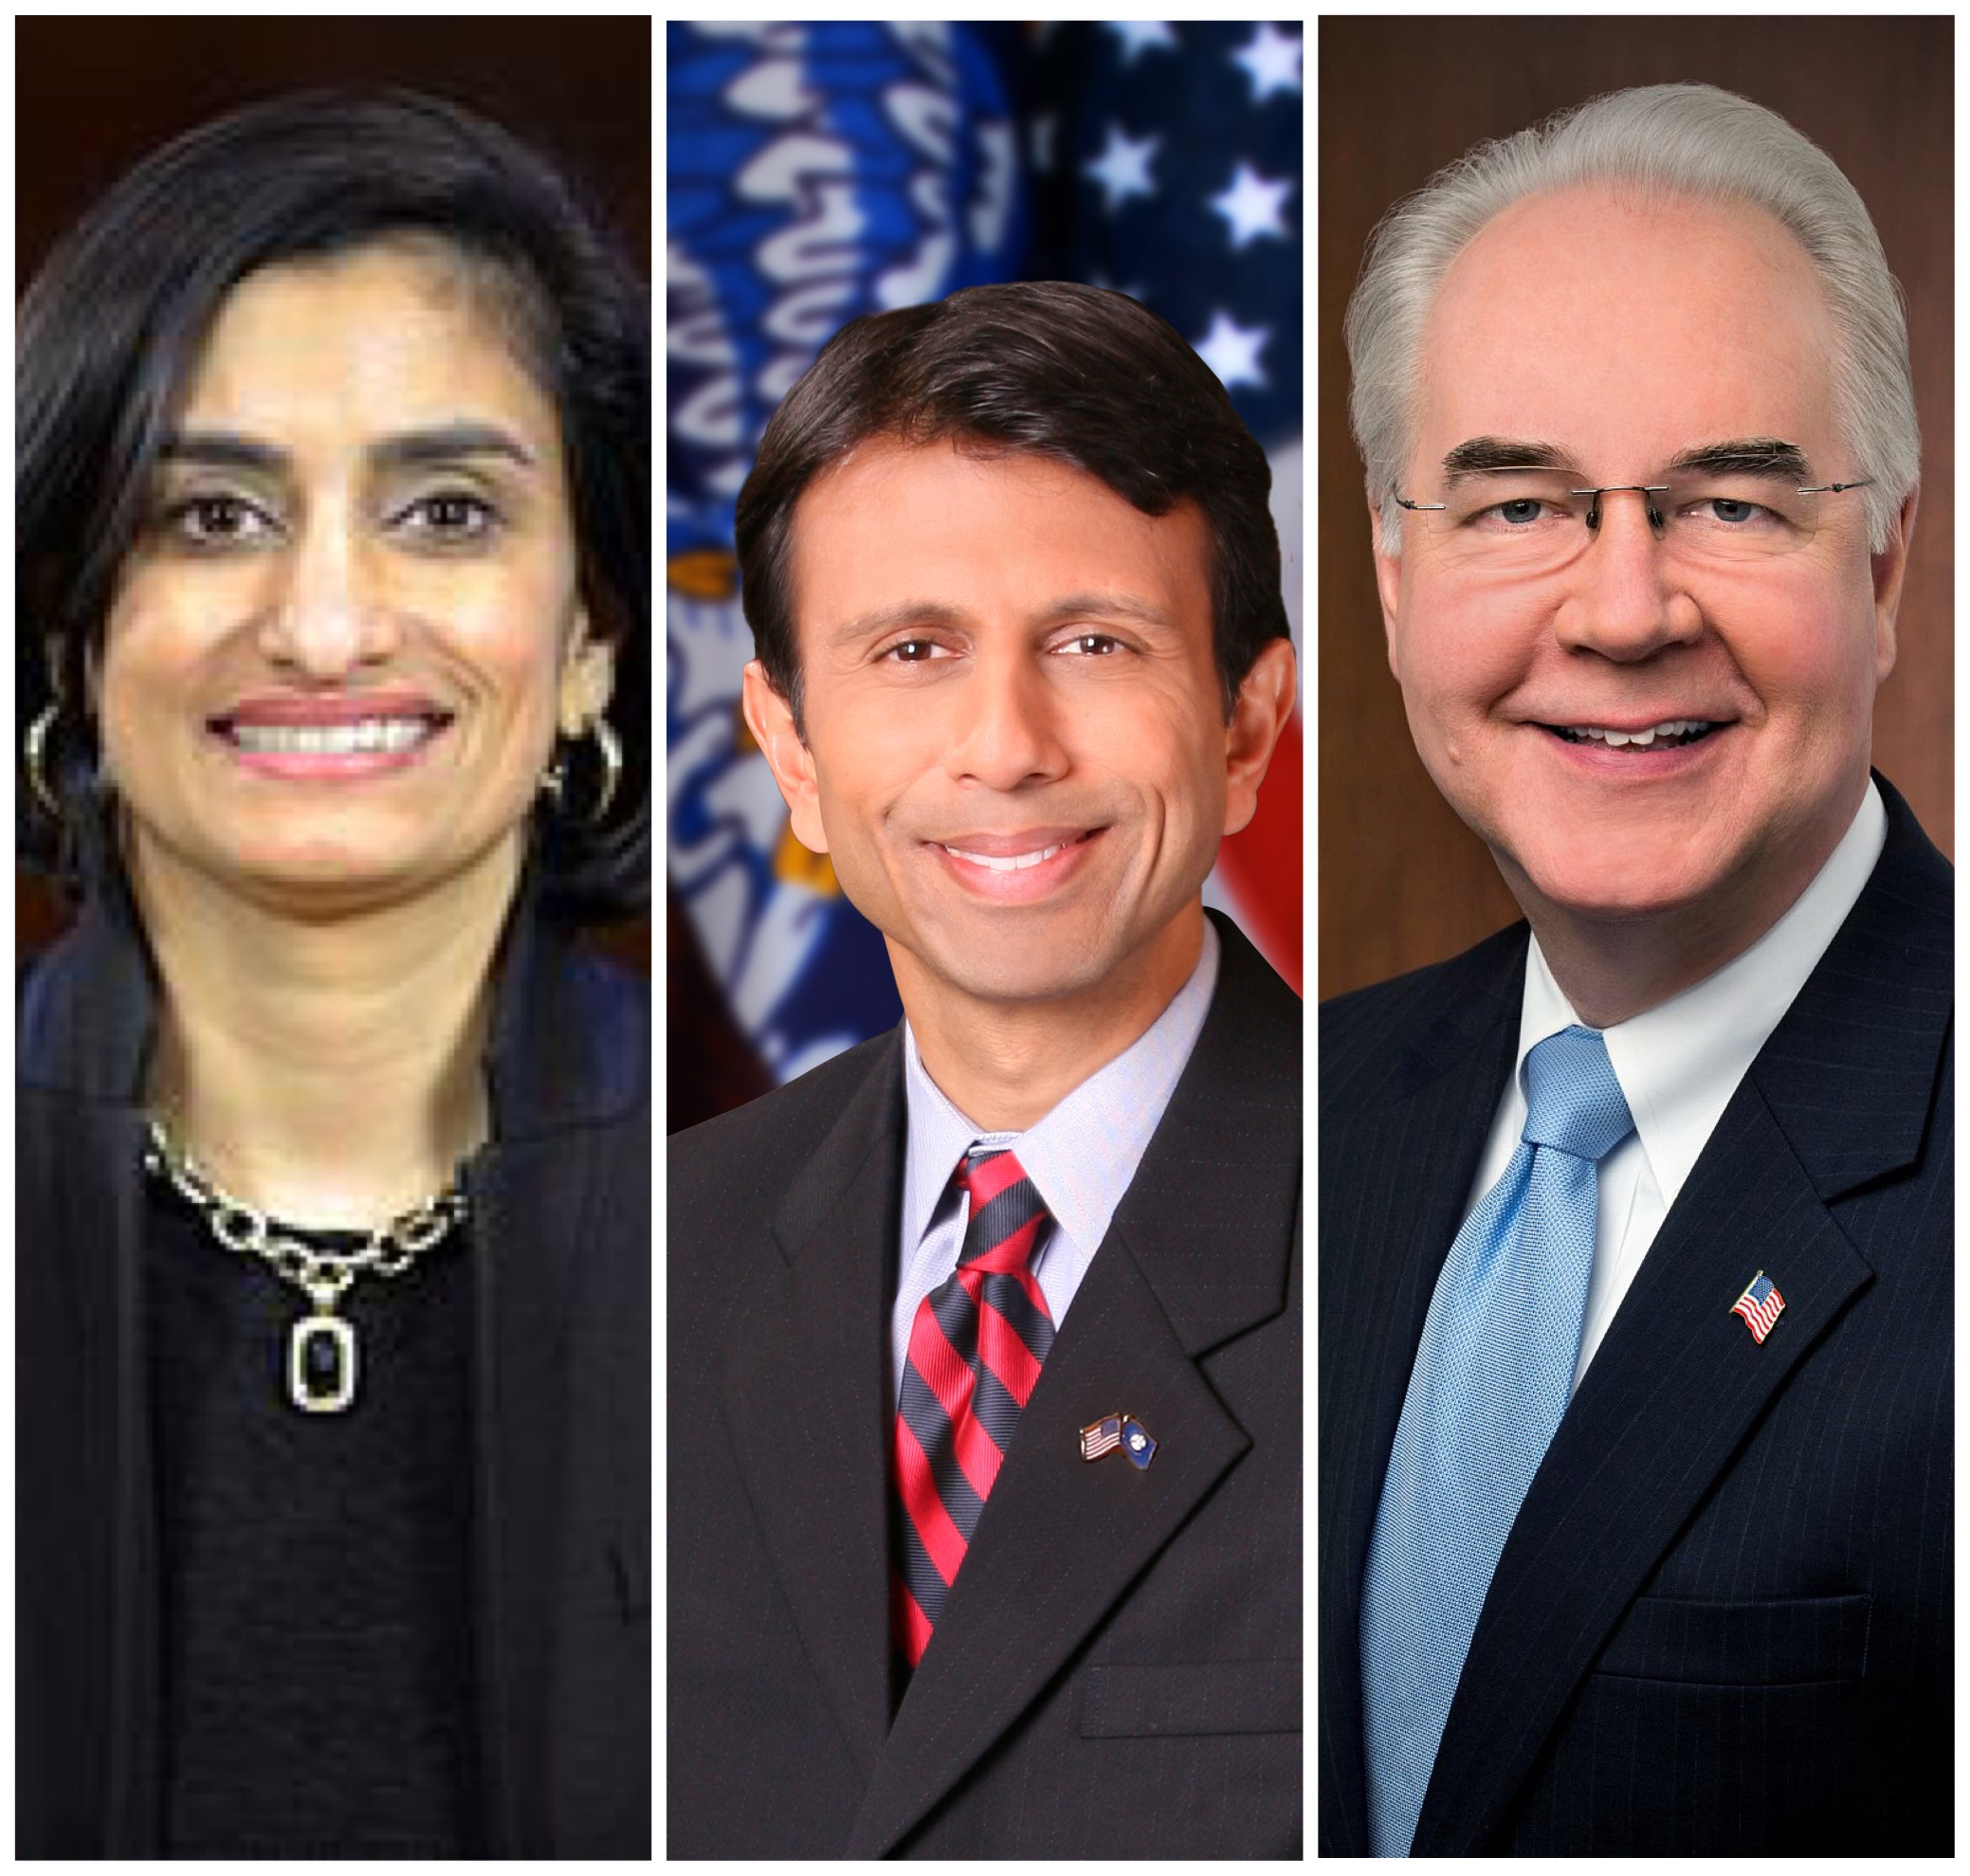 Health Secretary Tom Price Resigns; Seema Verma May Be Top Choice for Replacement